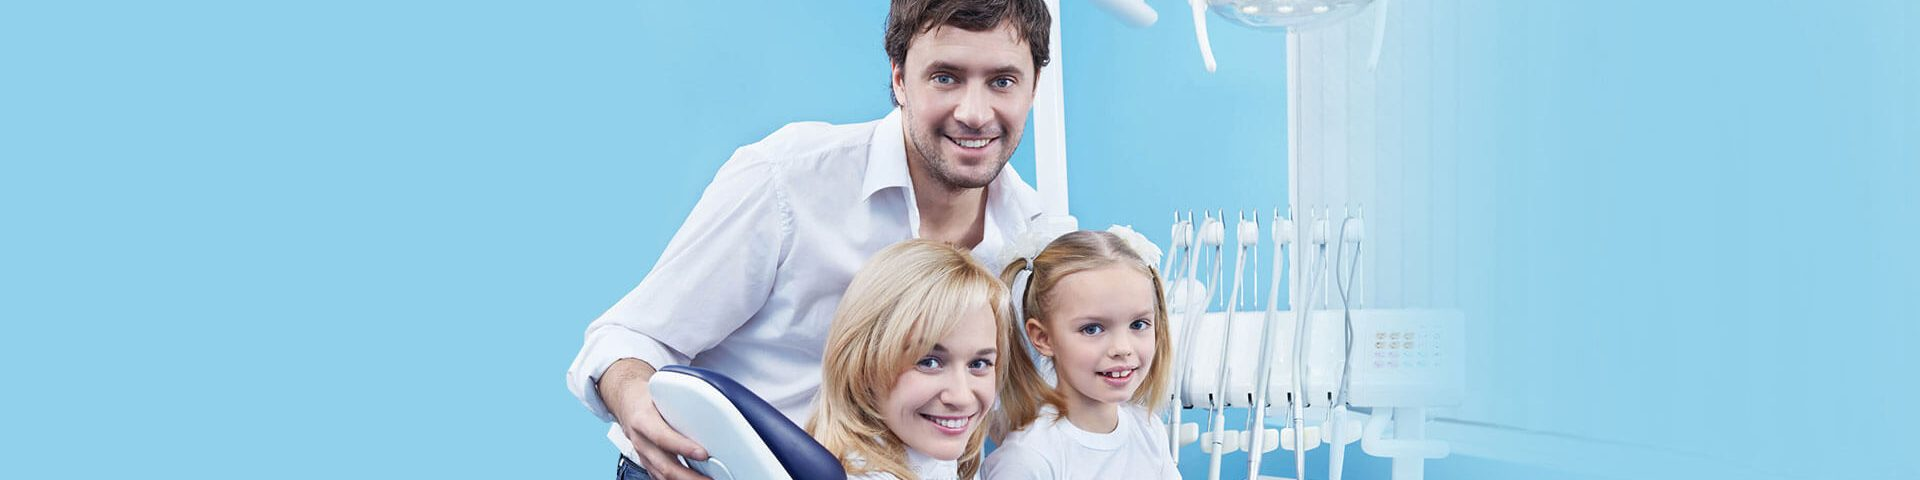 Is A Dental Visit What Dad Needs Most For Father's Day?